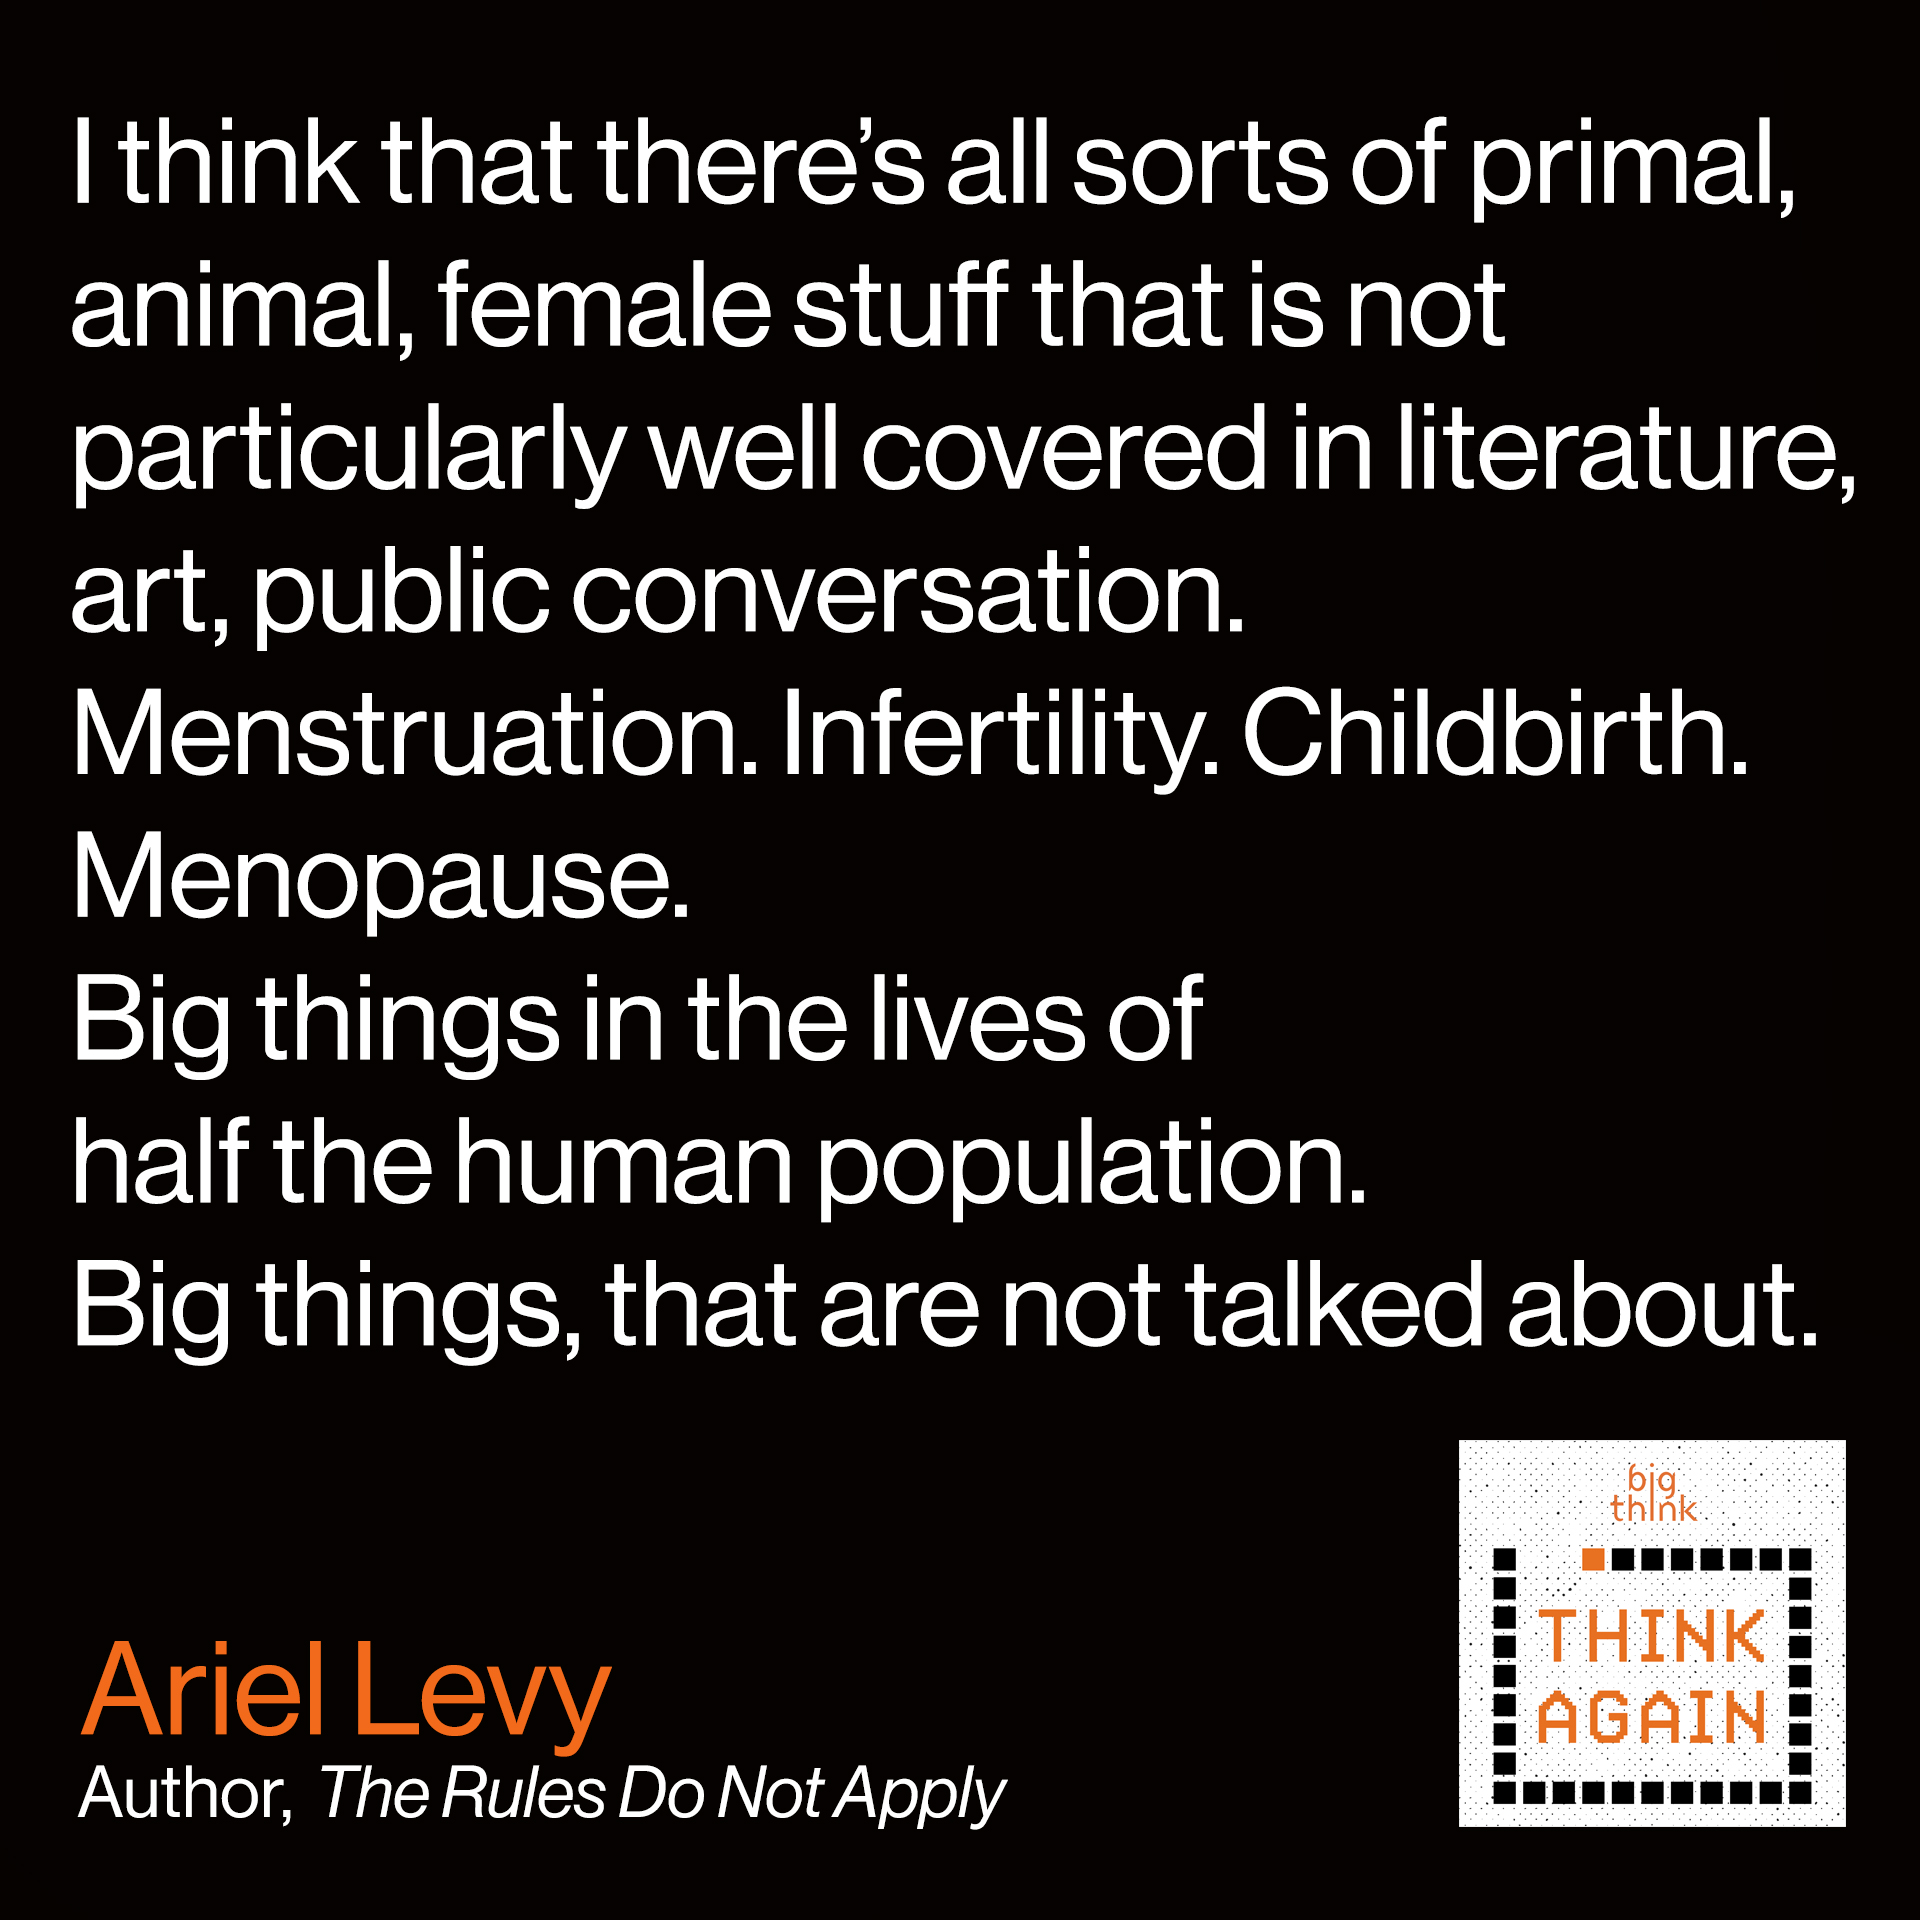 Ariel Levy Quote: I think that there's all sorts of primal, animal, female stuff that is not particularly well covered in literature, art, public conversation. Menstruation. Infertility. Childbirth. Menopause. Big things in the lives of half the human population. Big things. That are not talked about.